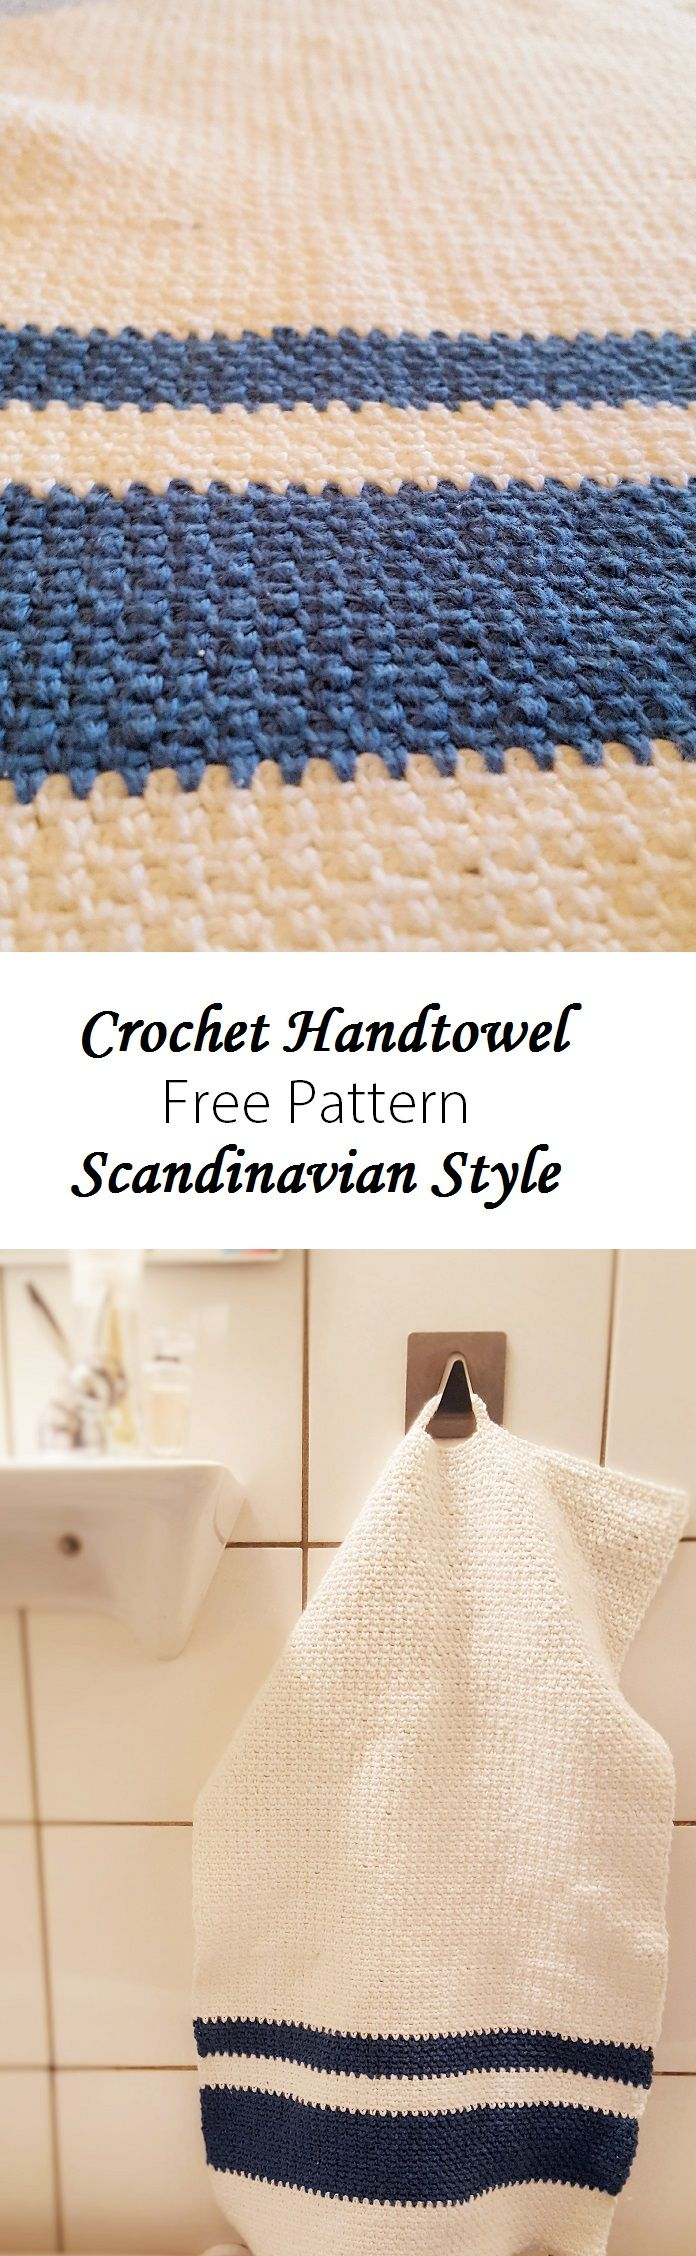 So pretty! Love the Scandinavian style of the handtowel.